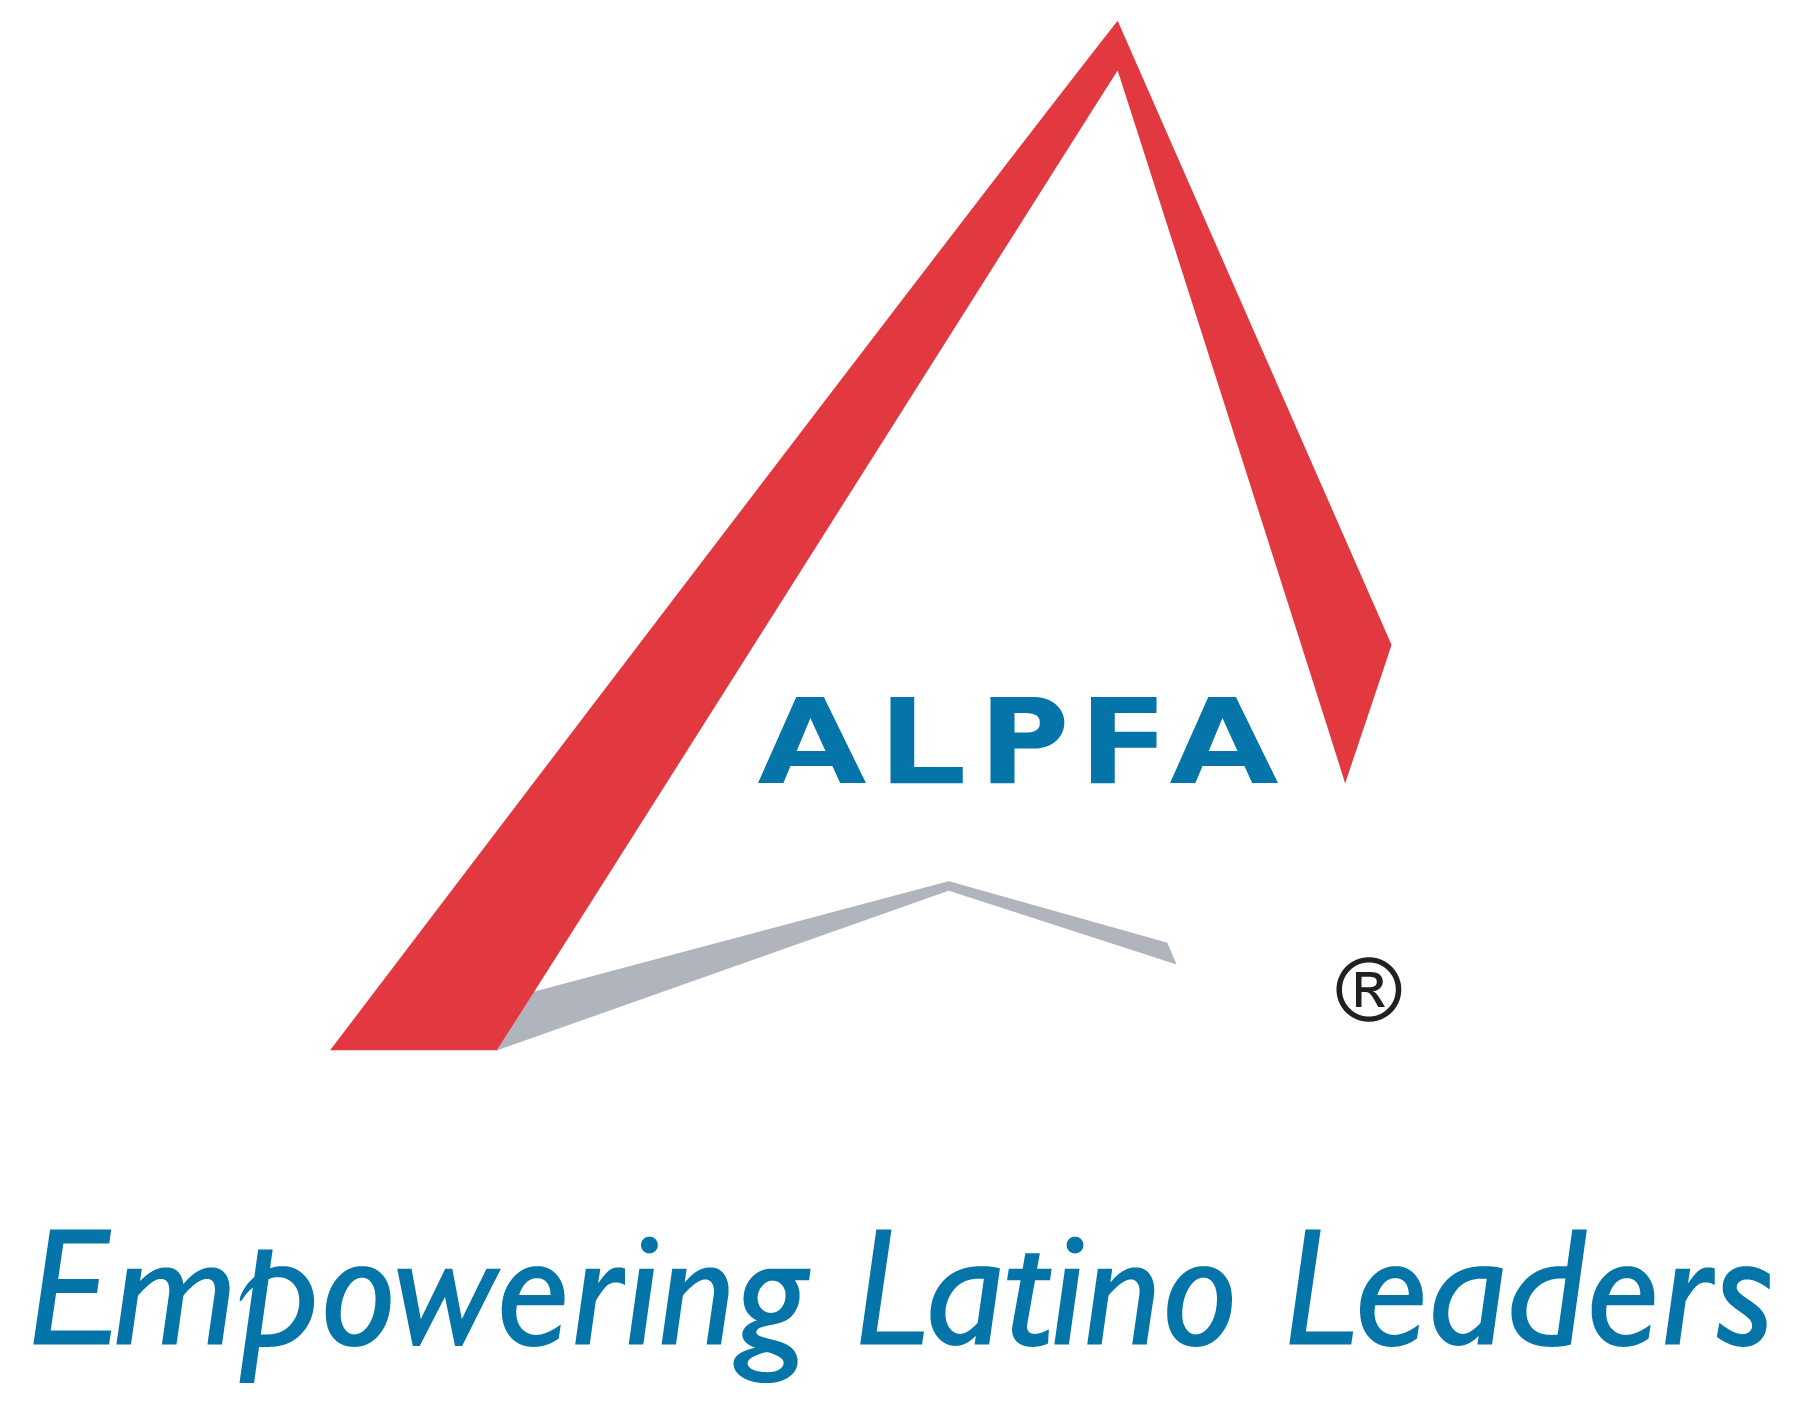 Business professionals of america logo png. Alpfa marketing resources org